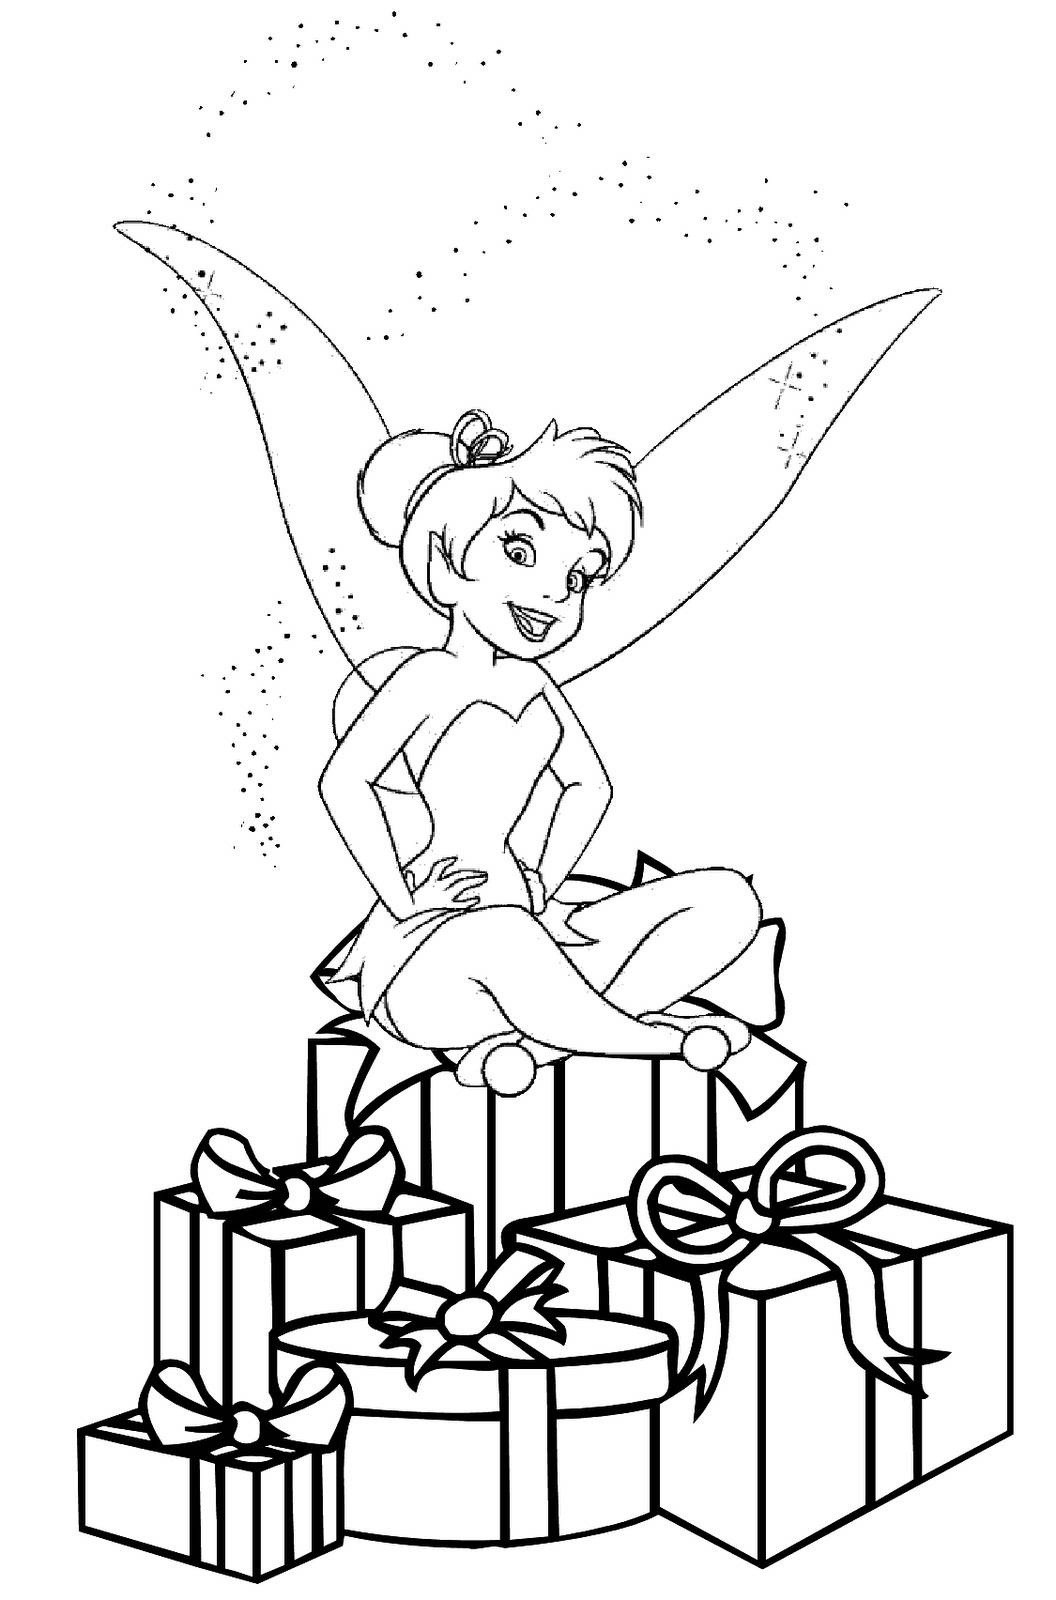 Disney Christmas Coloring Pages For Girls  Free Printable Tinkerbell Coloring Pages For Kids